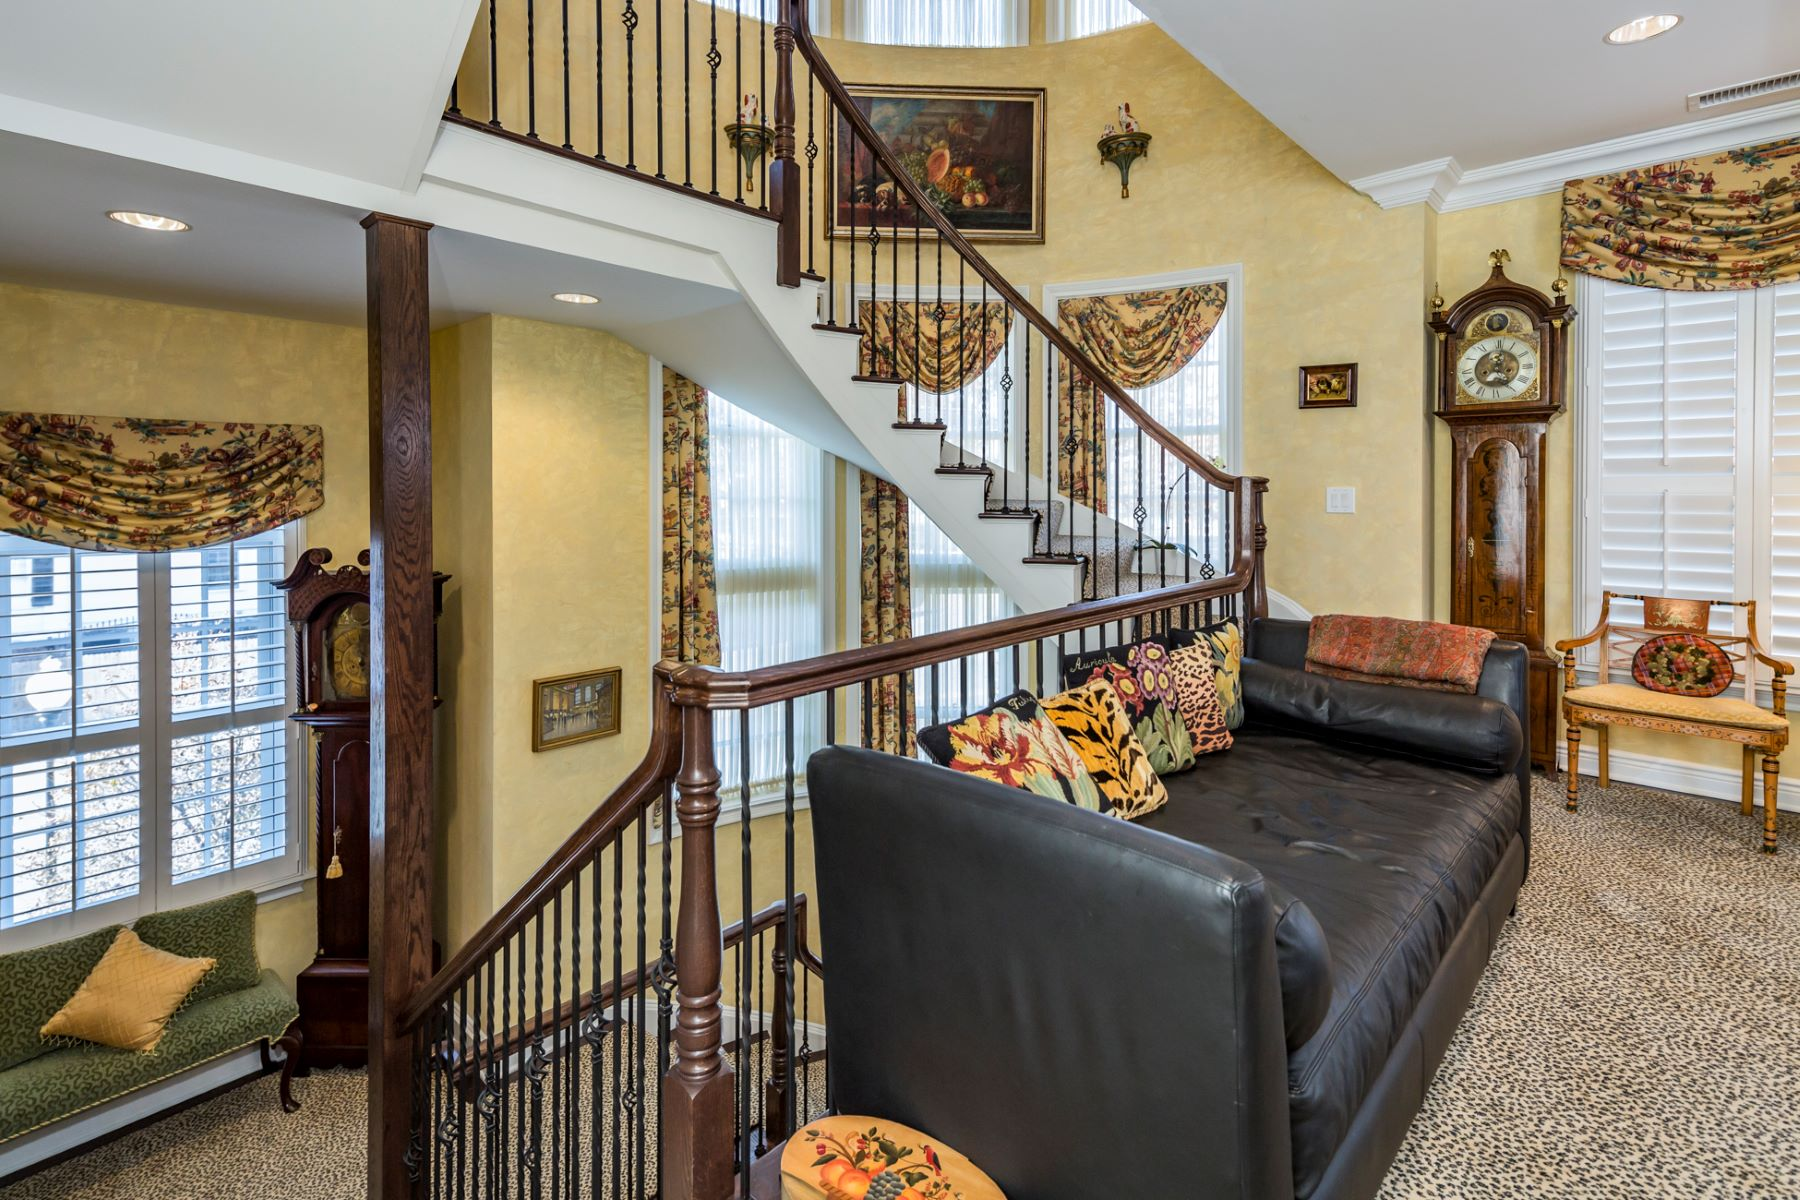 Additional photo for property listing at In-Town Haven Is Absolutely Elegant in Every Way 36 Paul Robeson Place, Princeton, New Jersey 08540 United States